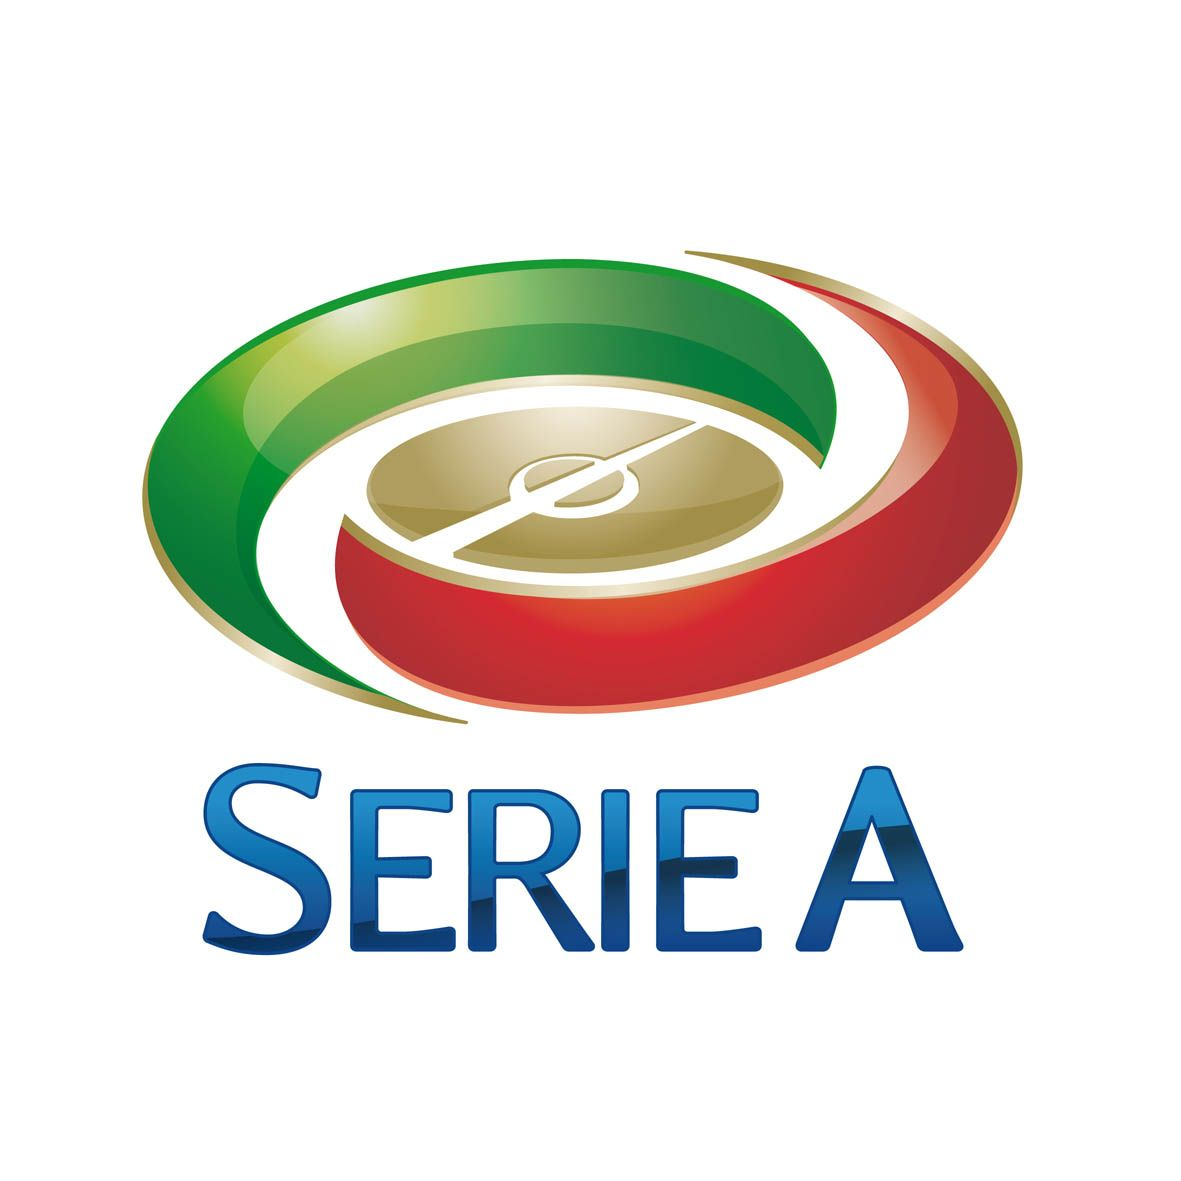 Italian League Serie A Italy Always Produces A Quality World Cup Team Due To The Creativity And Brilliance On Display In Campeonato Italiano Sportv Juventus